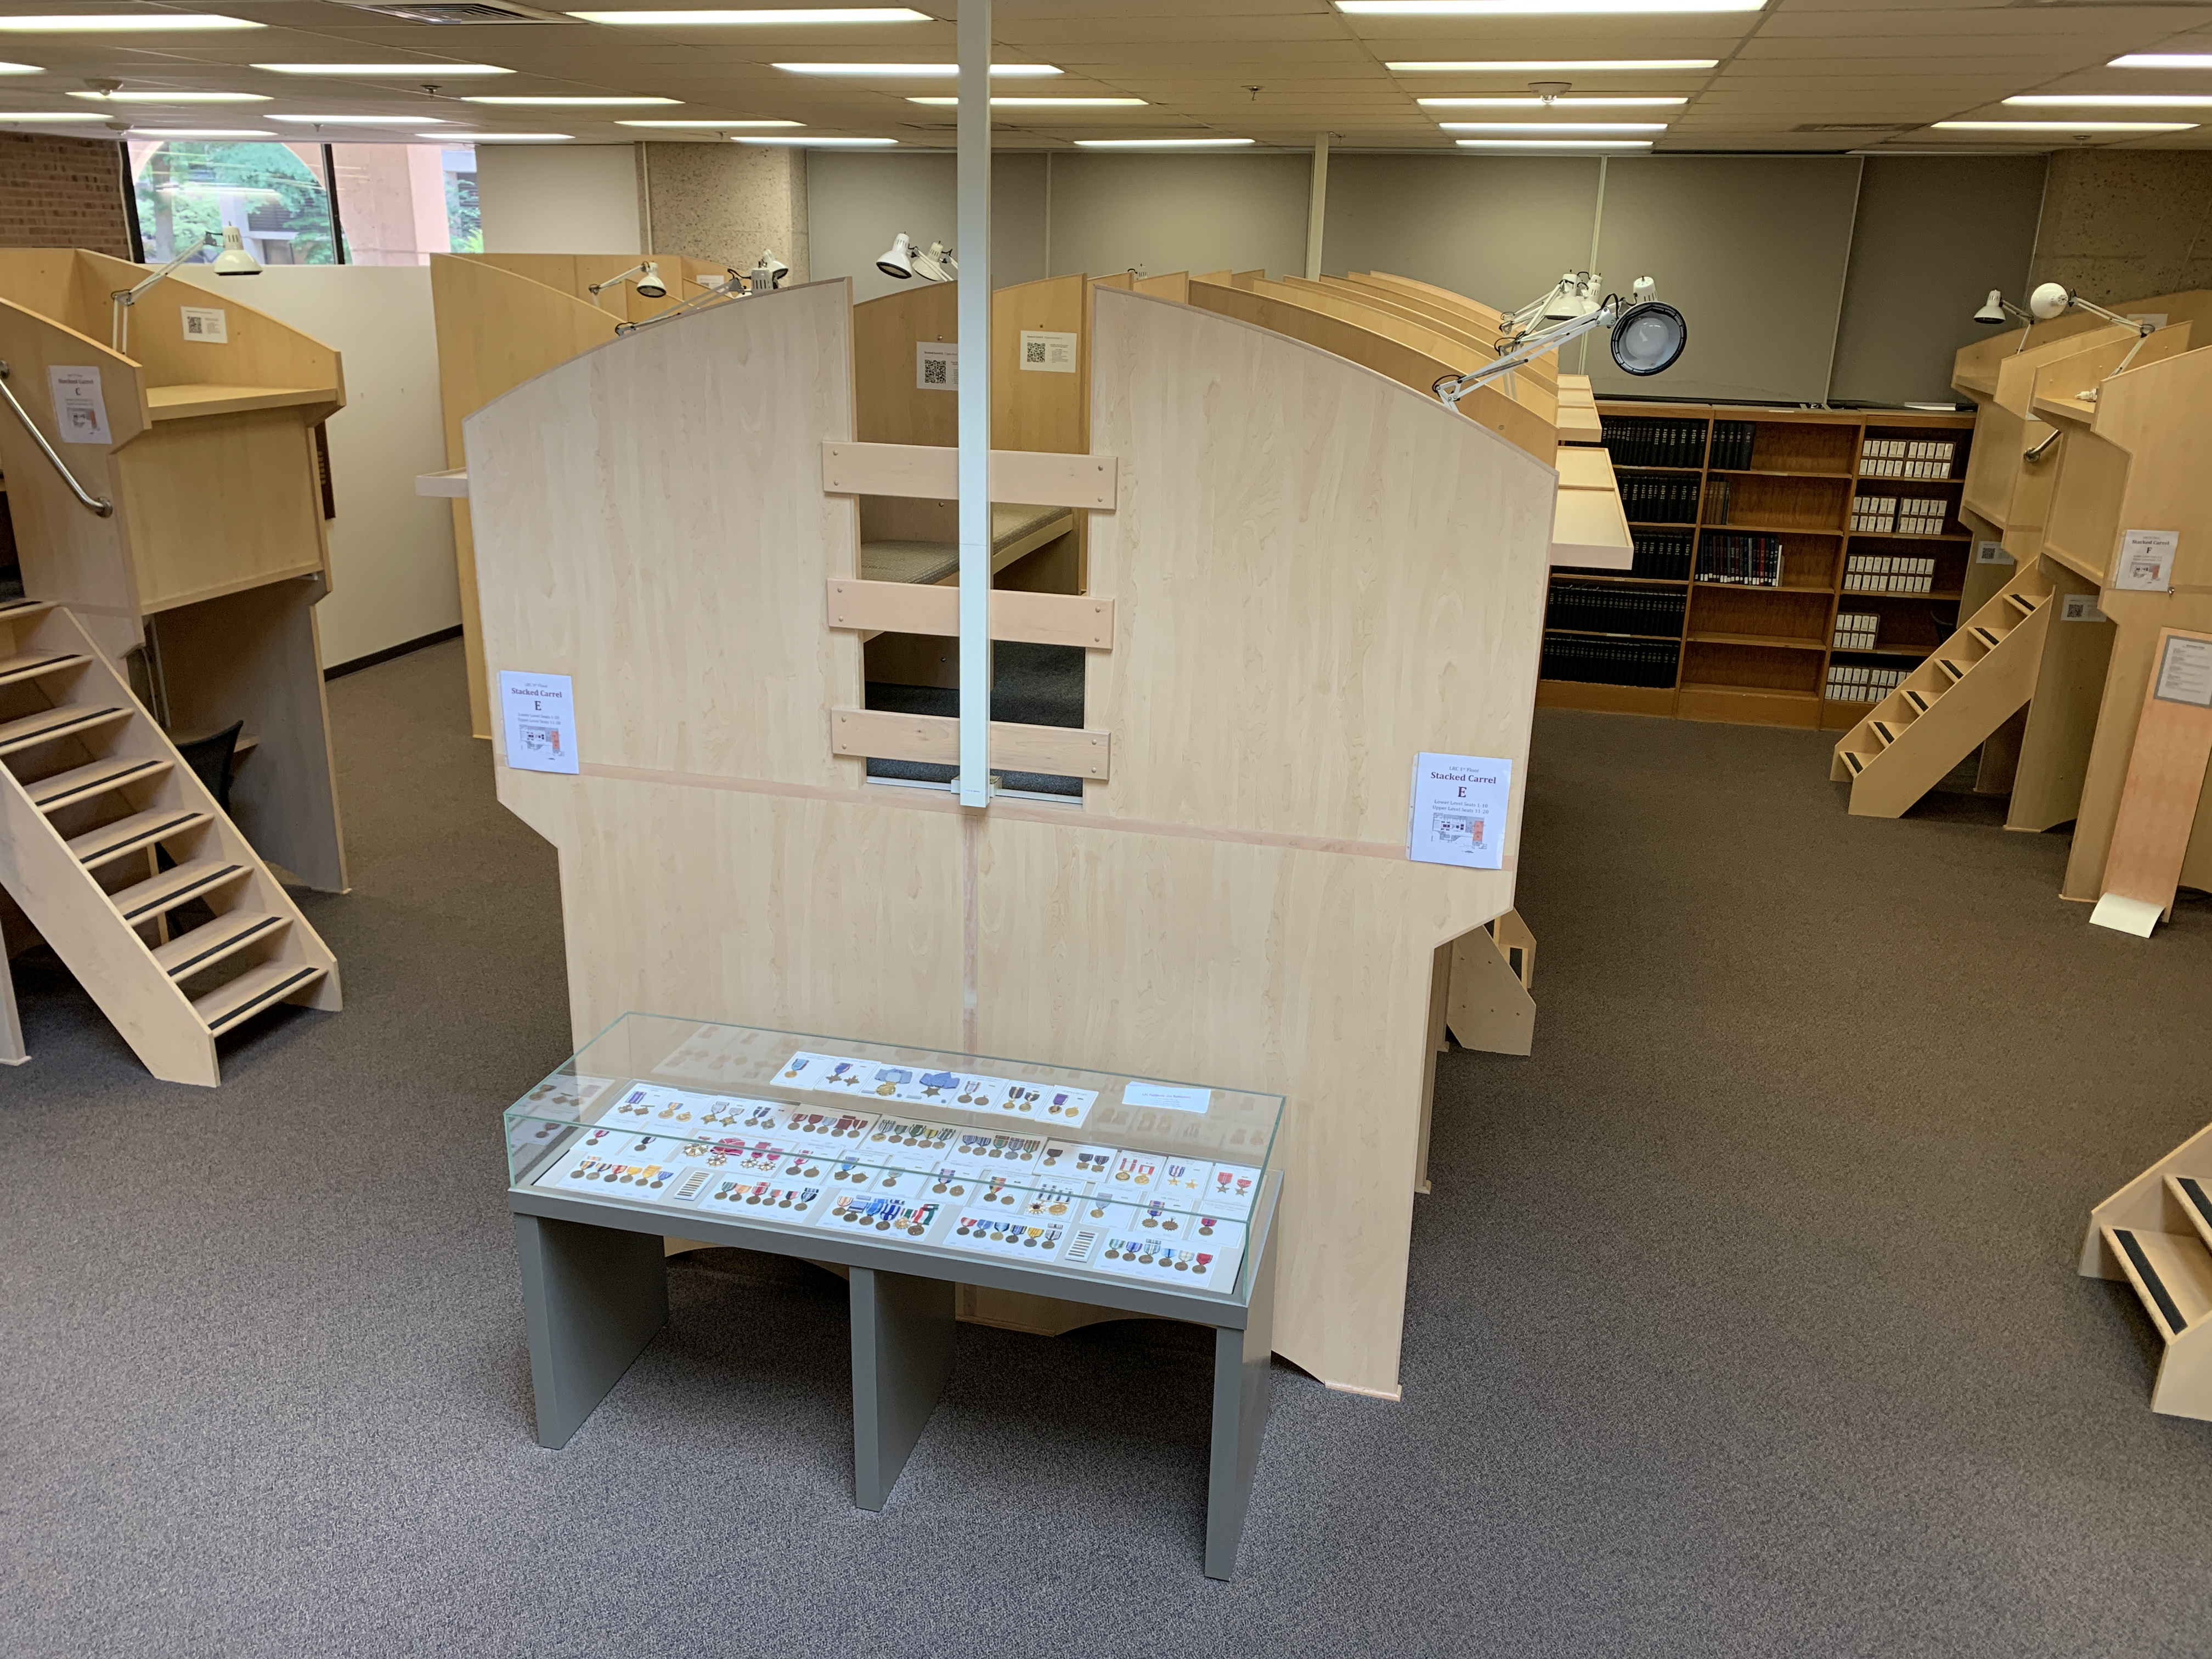 An overhead view of the first floor study carrels and the medal display case.